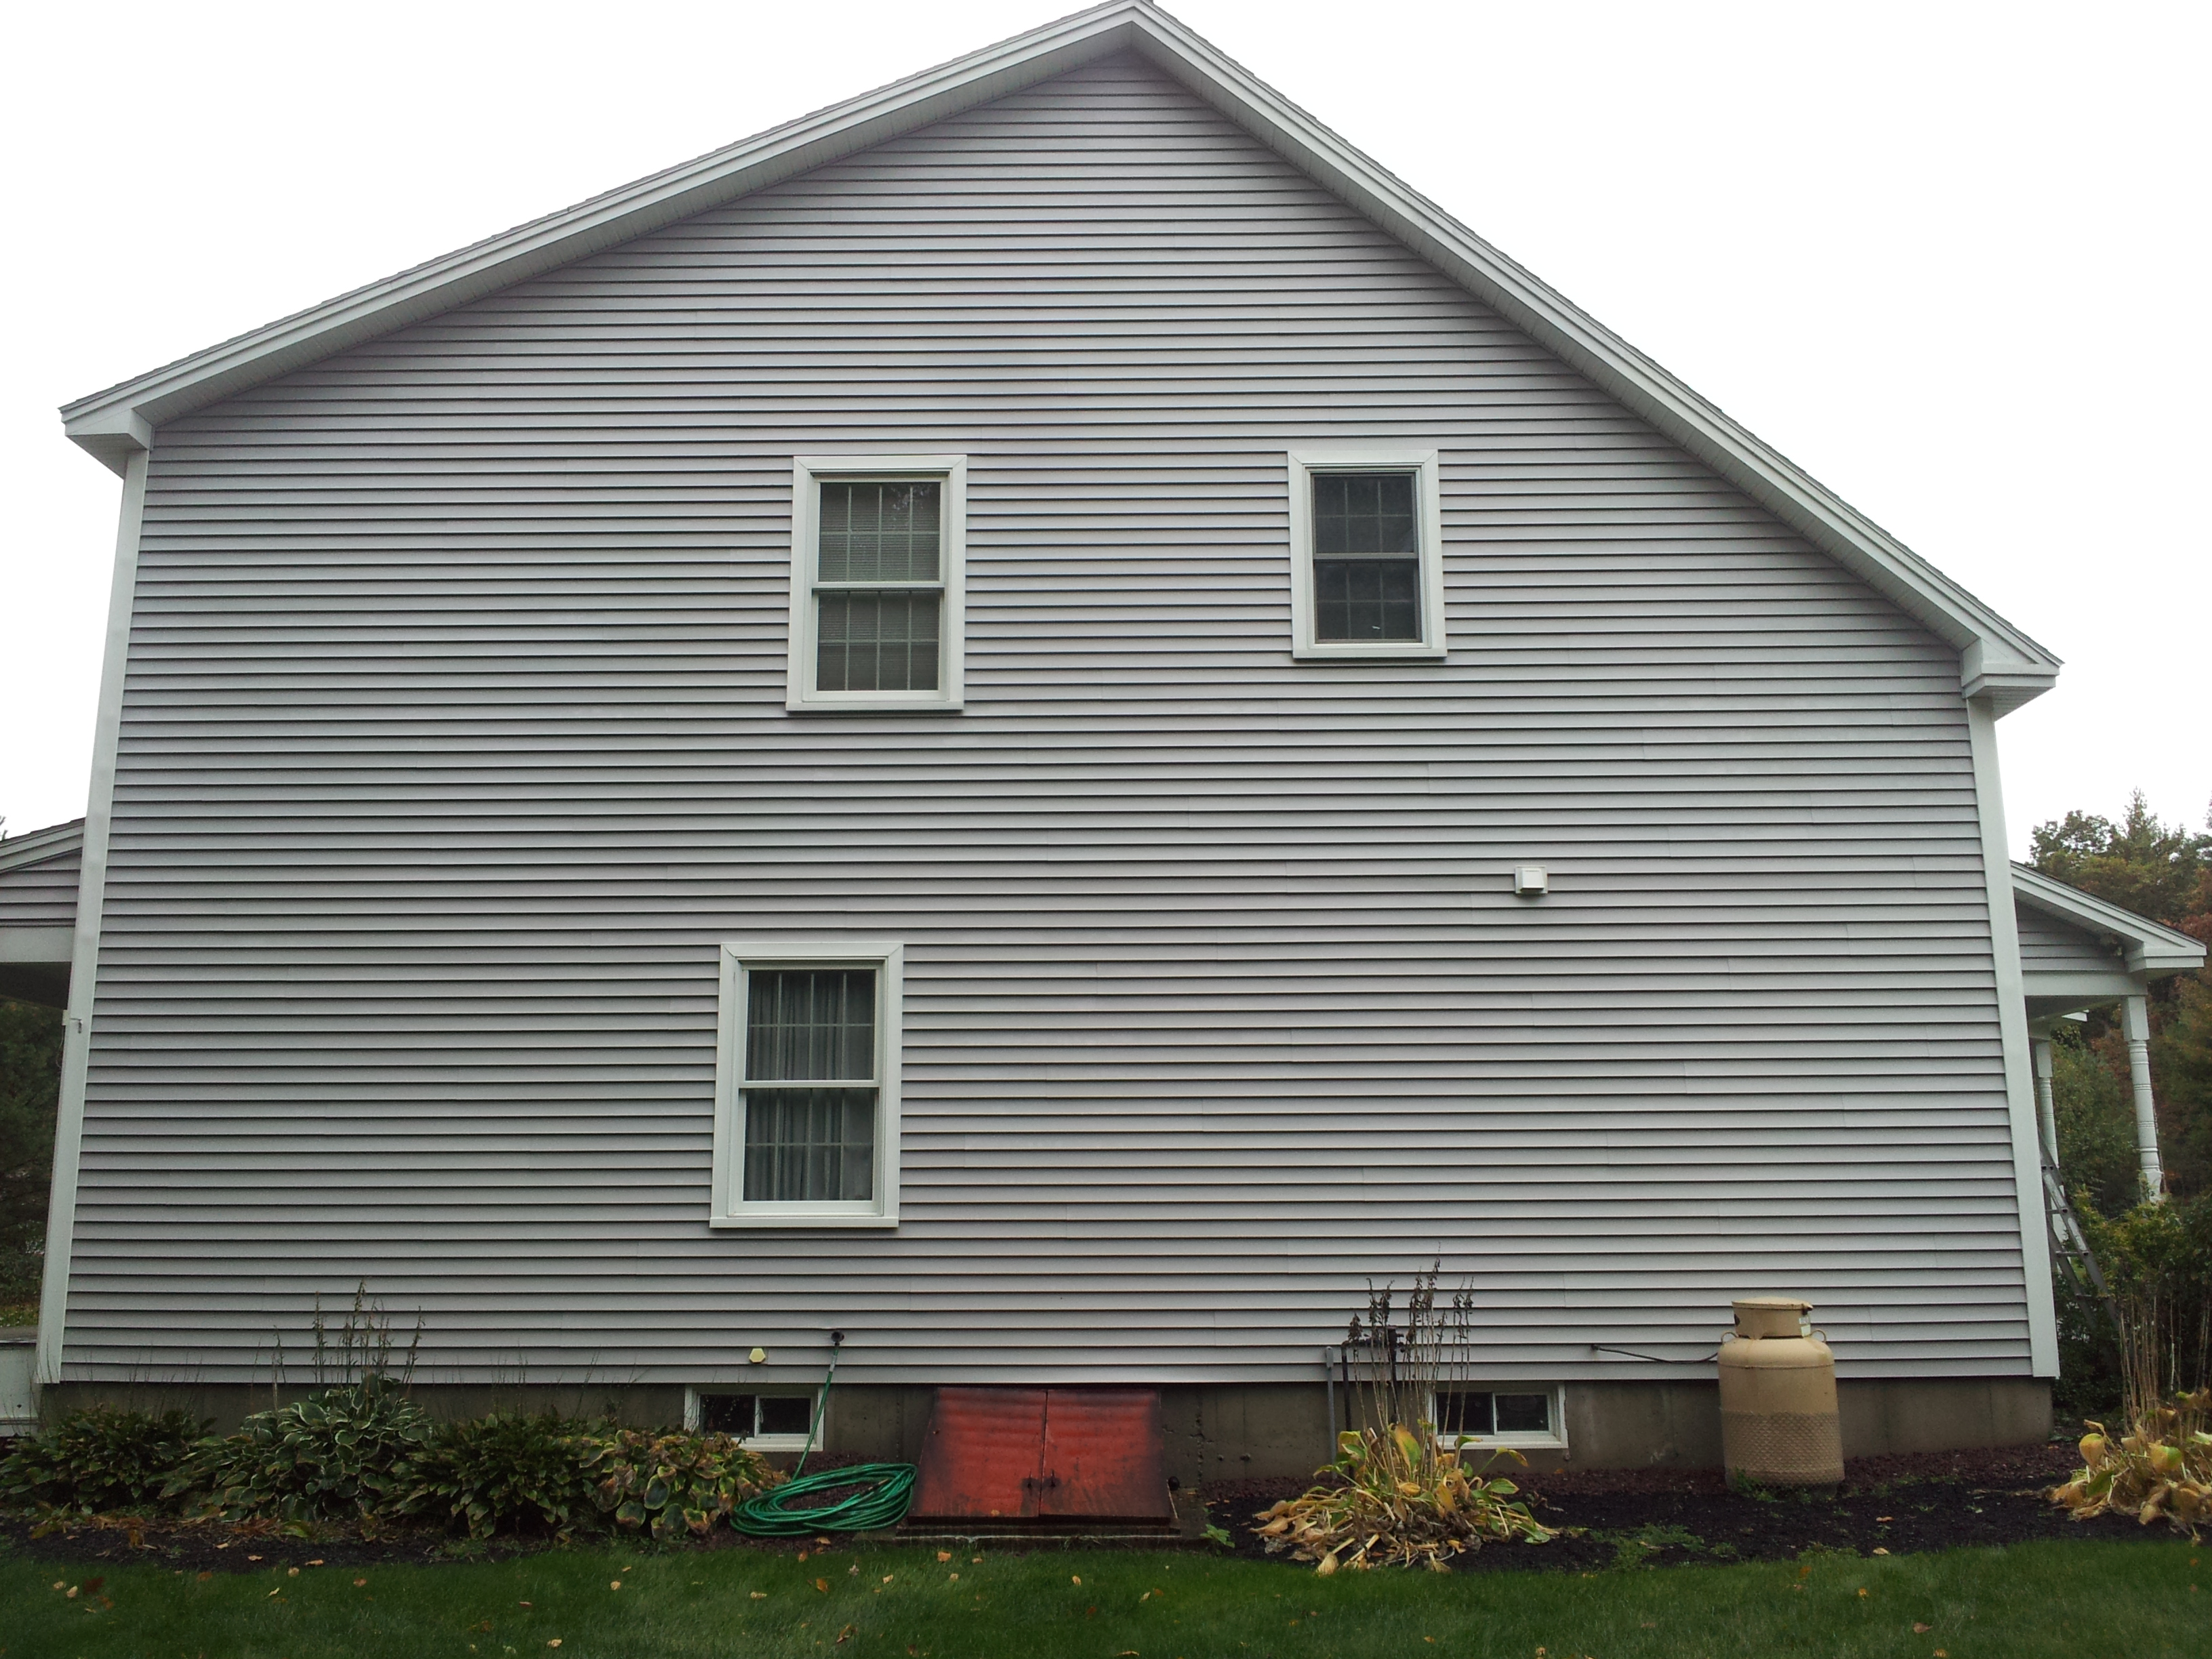 Roof Clean Plus Siding Cleaning For Vinyl Wood Cedar Stucco Brick Aluminum